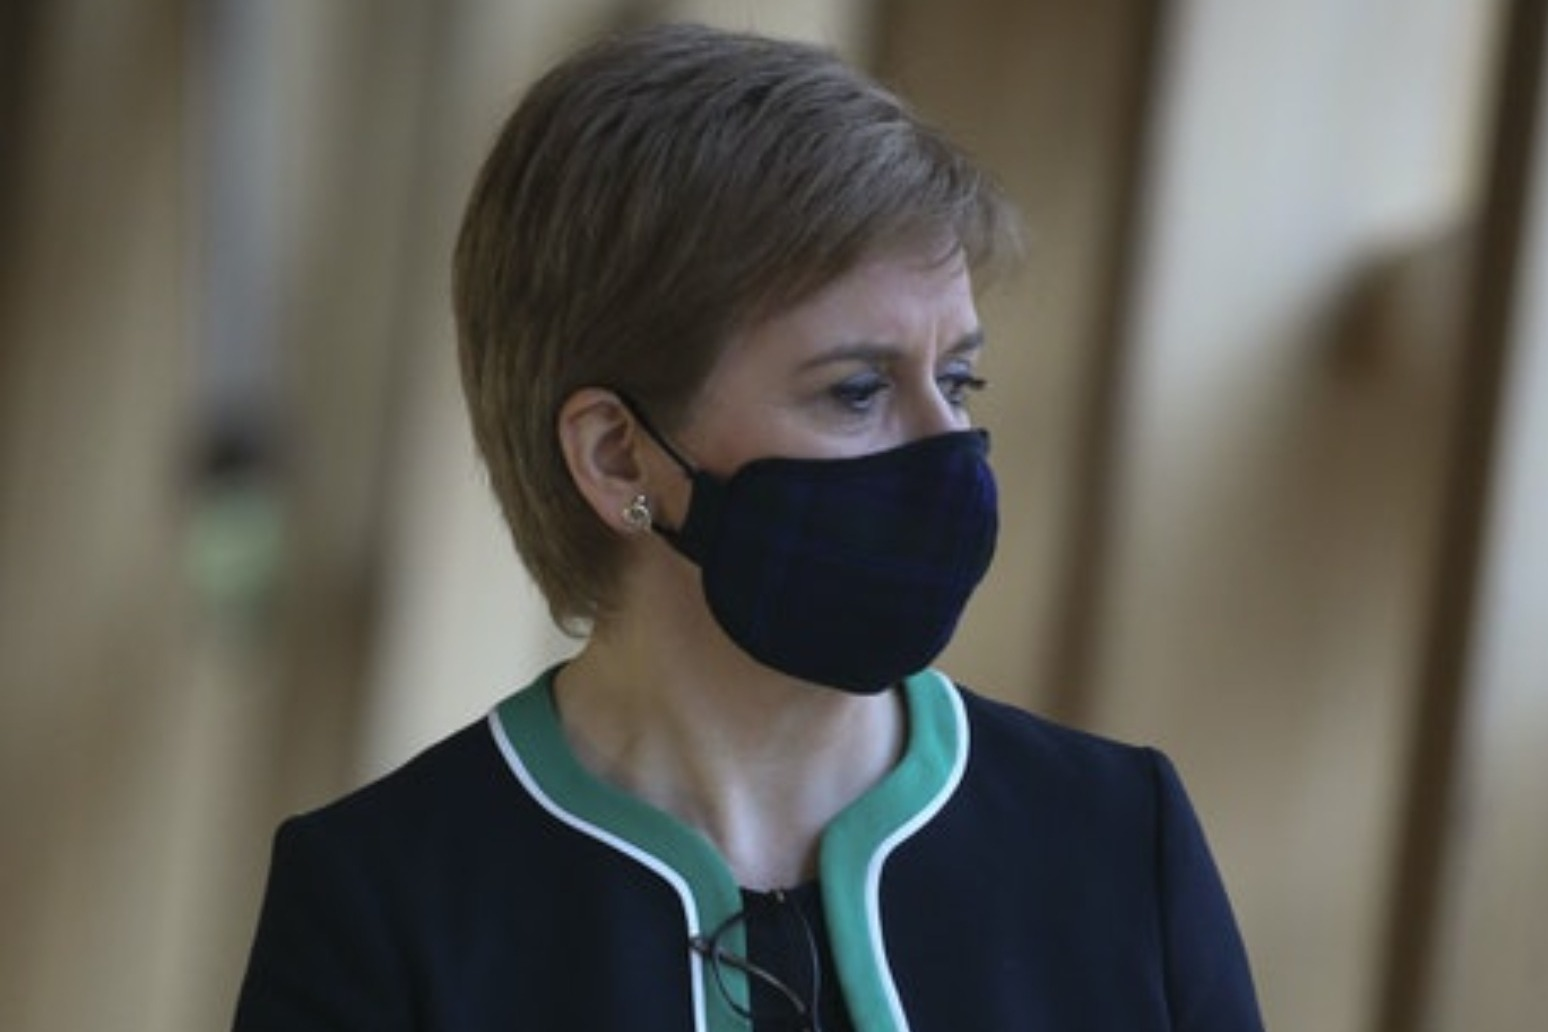 Nicola Sturgeon apologises for breaching Covid rules thumbnail